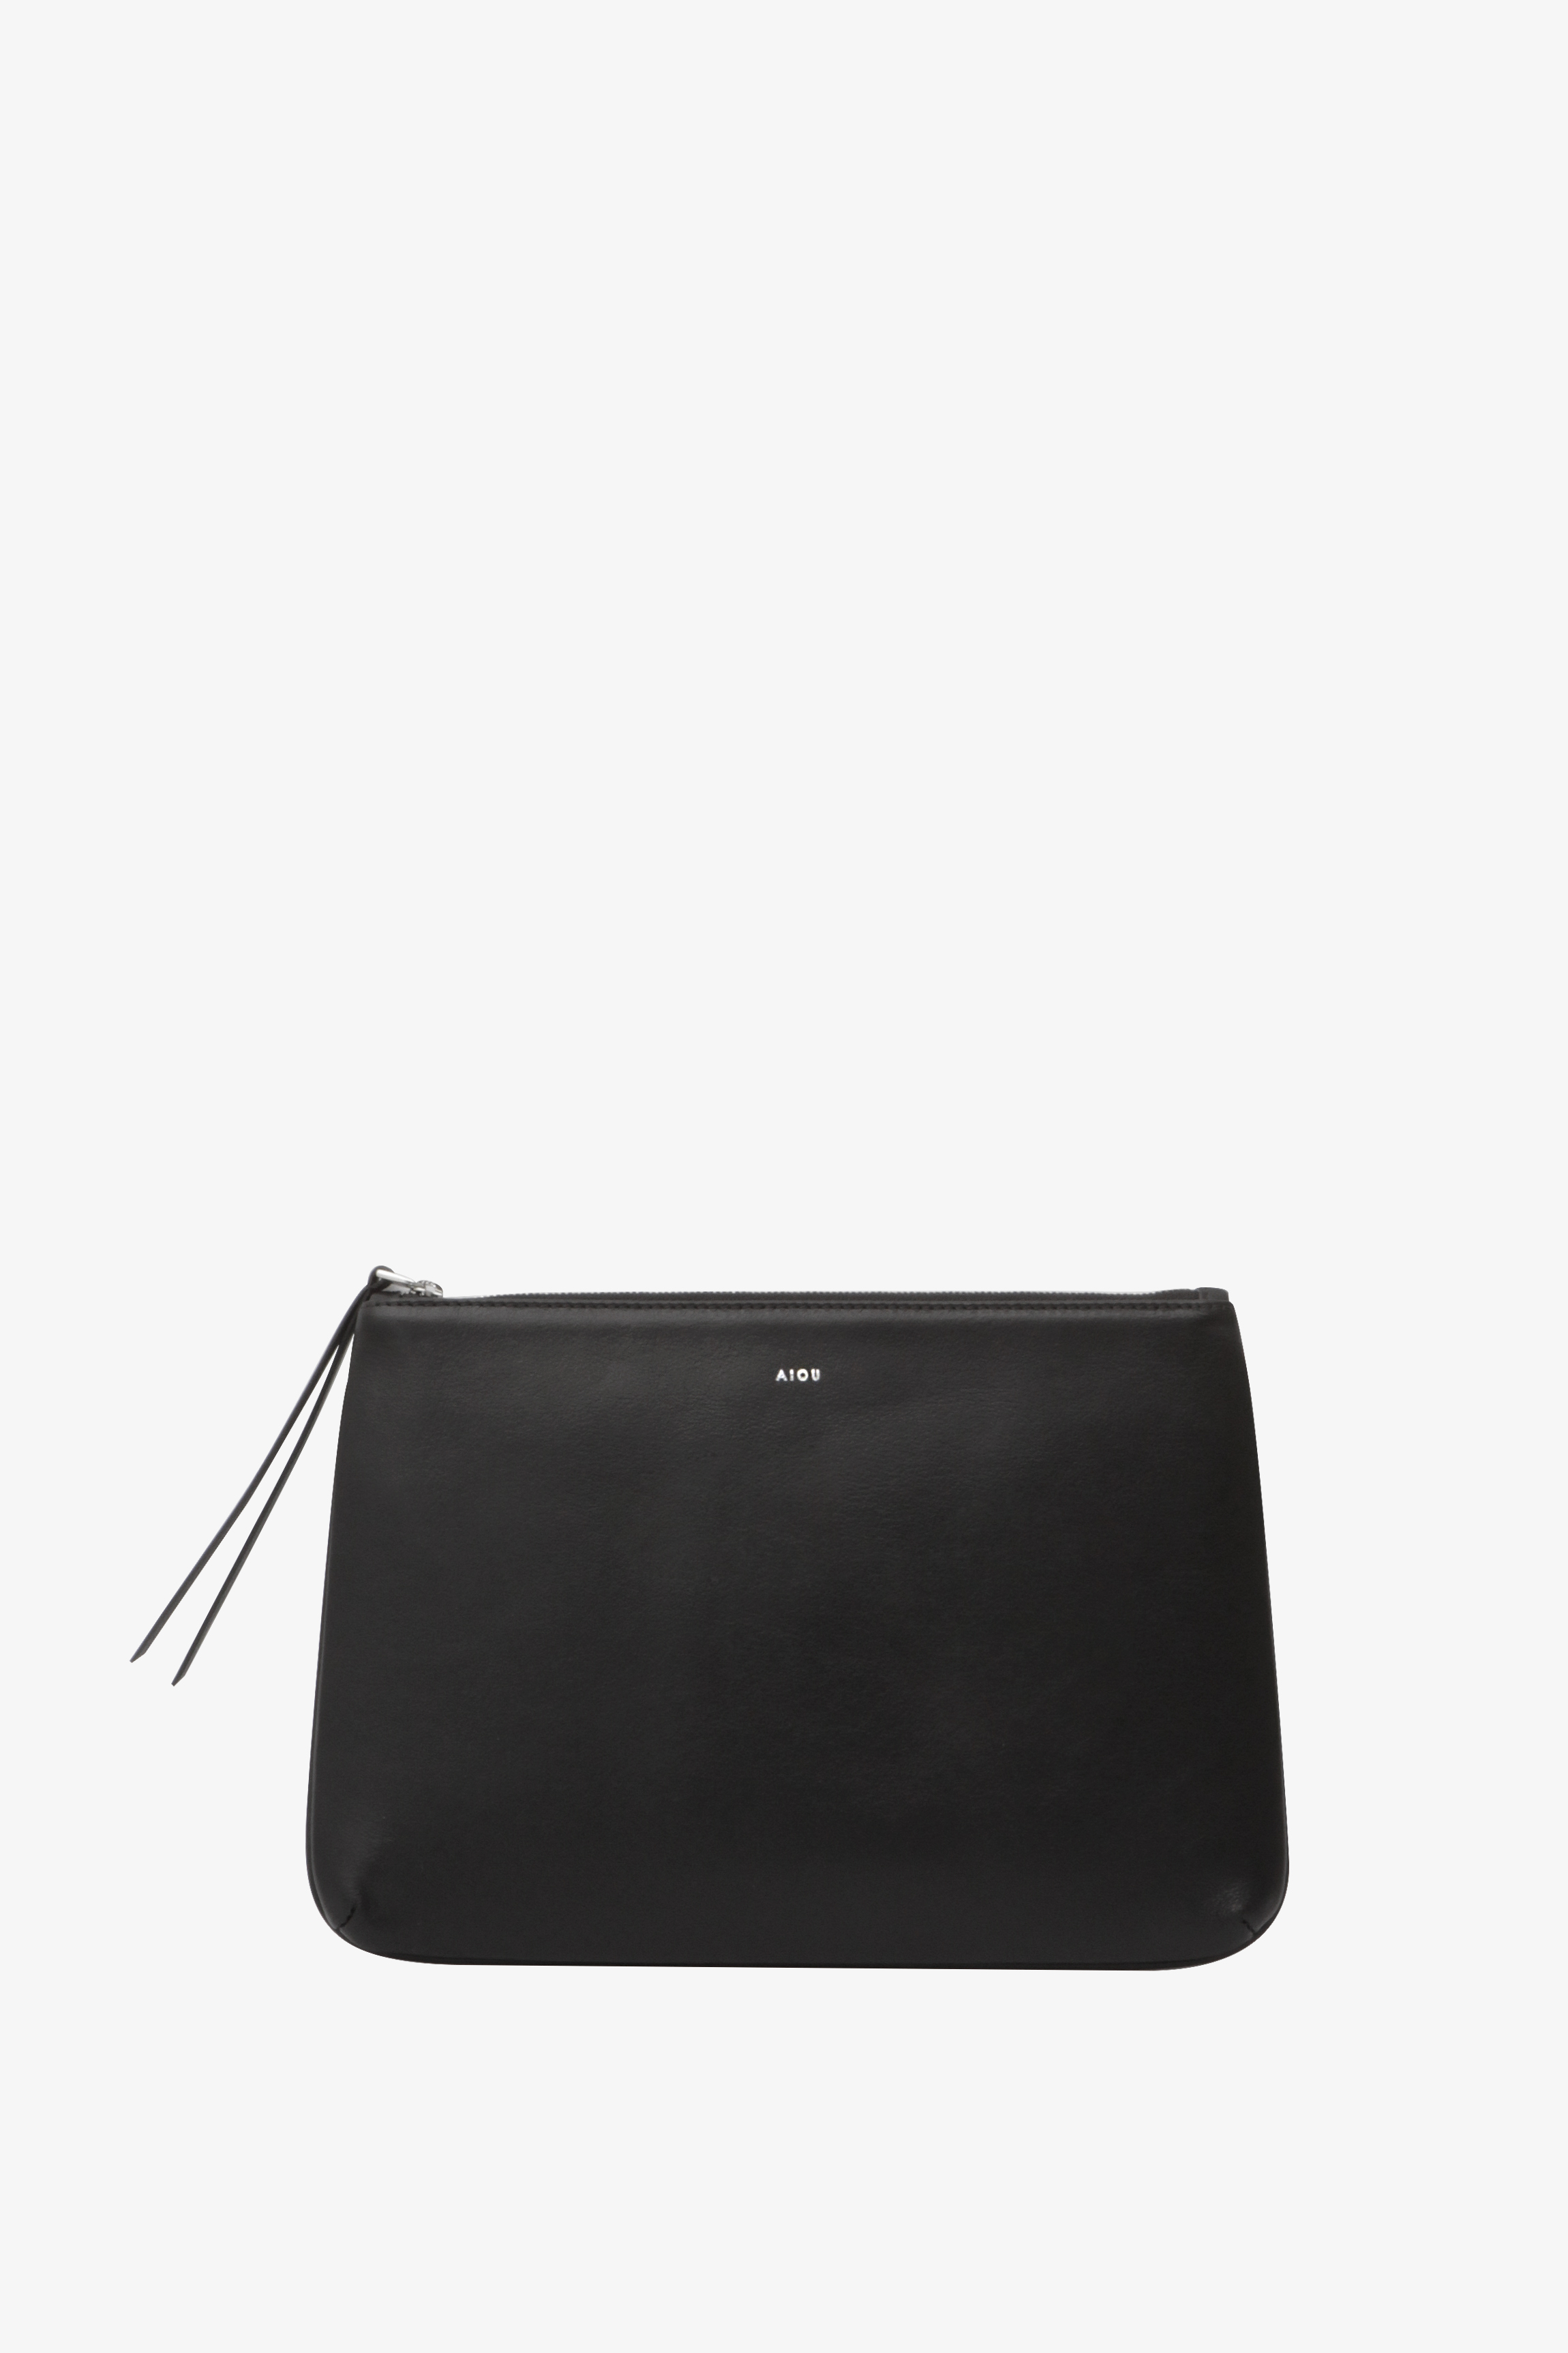 [season off 50%]Copenhagen Clutch Black